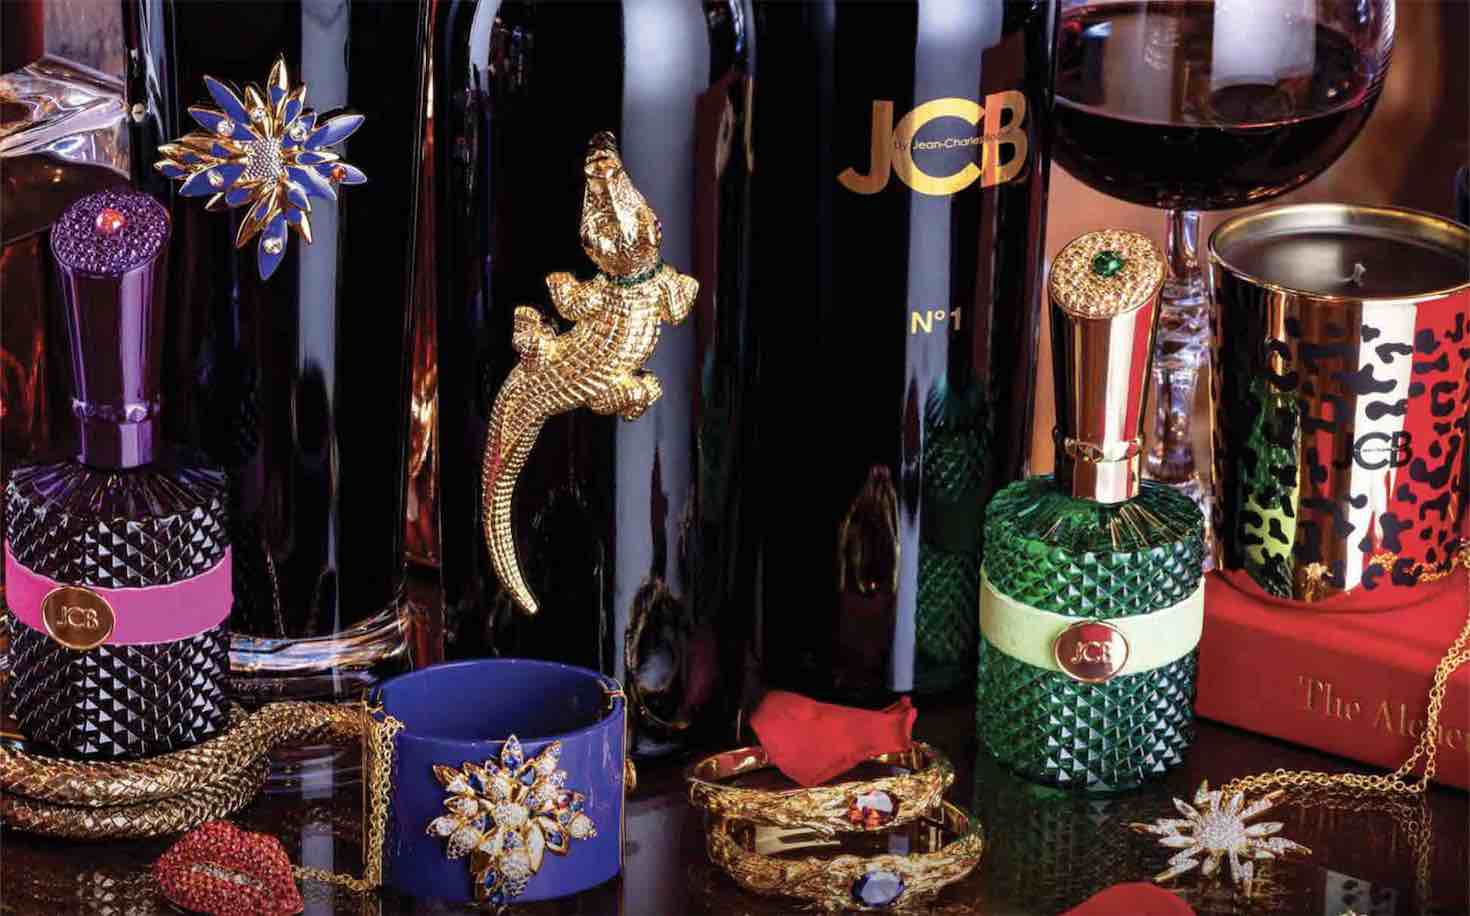 luxury wine gifts for corporate gifting and holiday gifts, plus room sprays, fragrances and wine-inspired jewelry on a table top